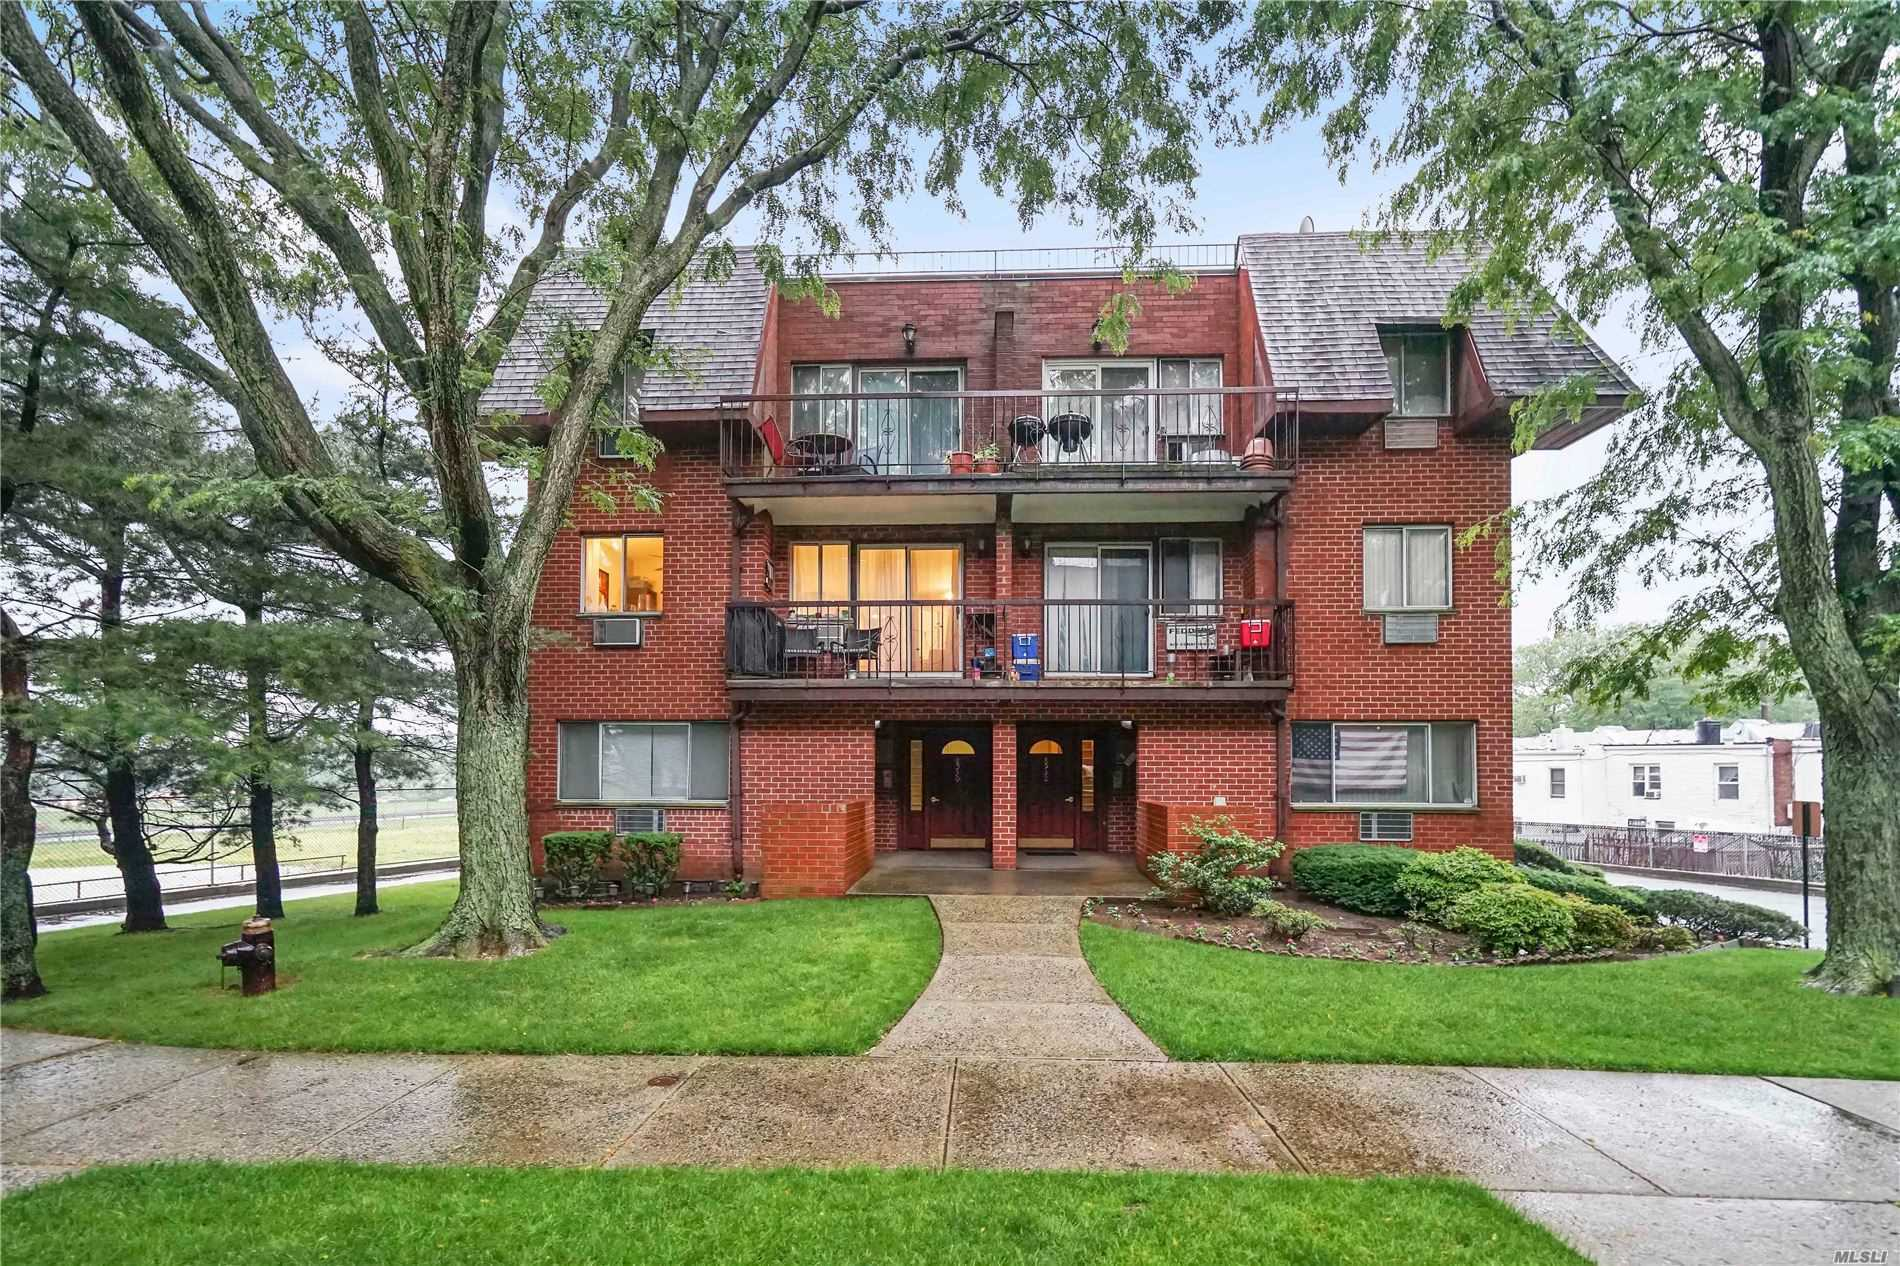 Property for sale at 8530 Dumont Avenue # 12B, Ozone Park NY 11417, Ozone Park,  New York 11417